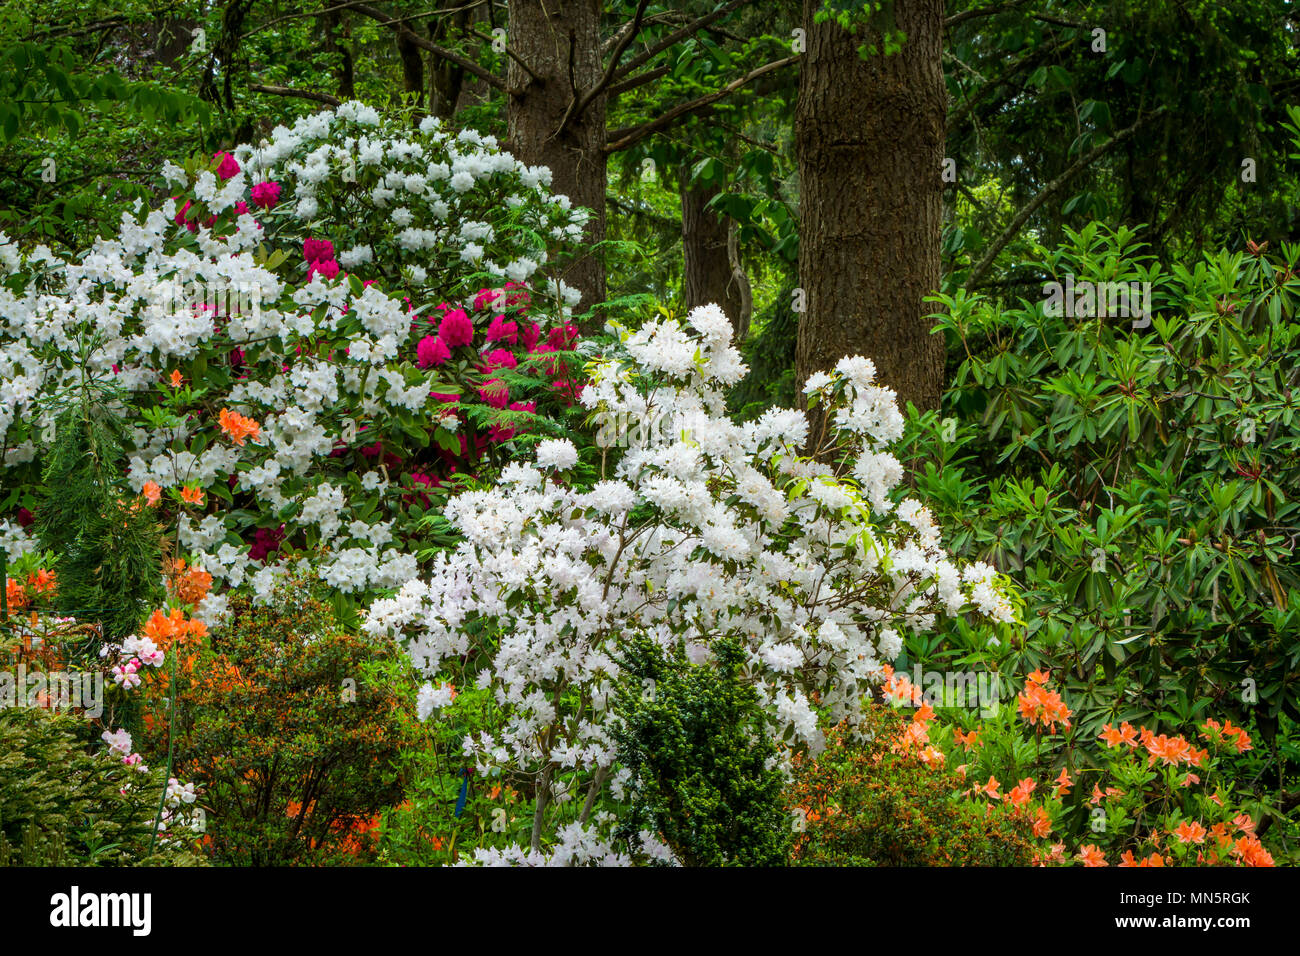 Hendricks Park, Rhododendron Gardens in Eugene, Oregon, USA. - Stock Image